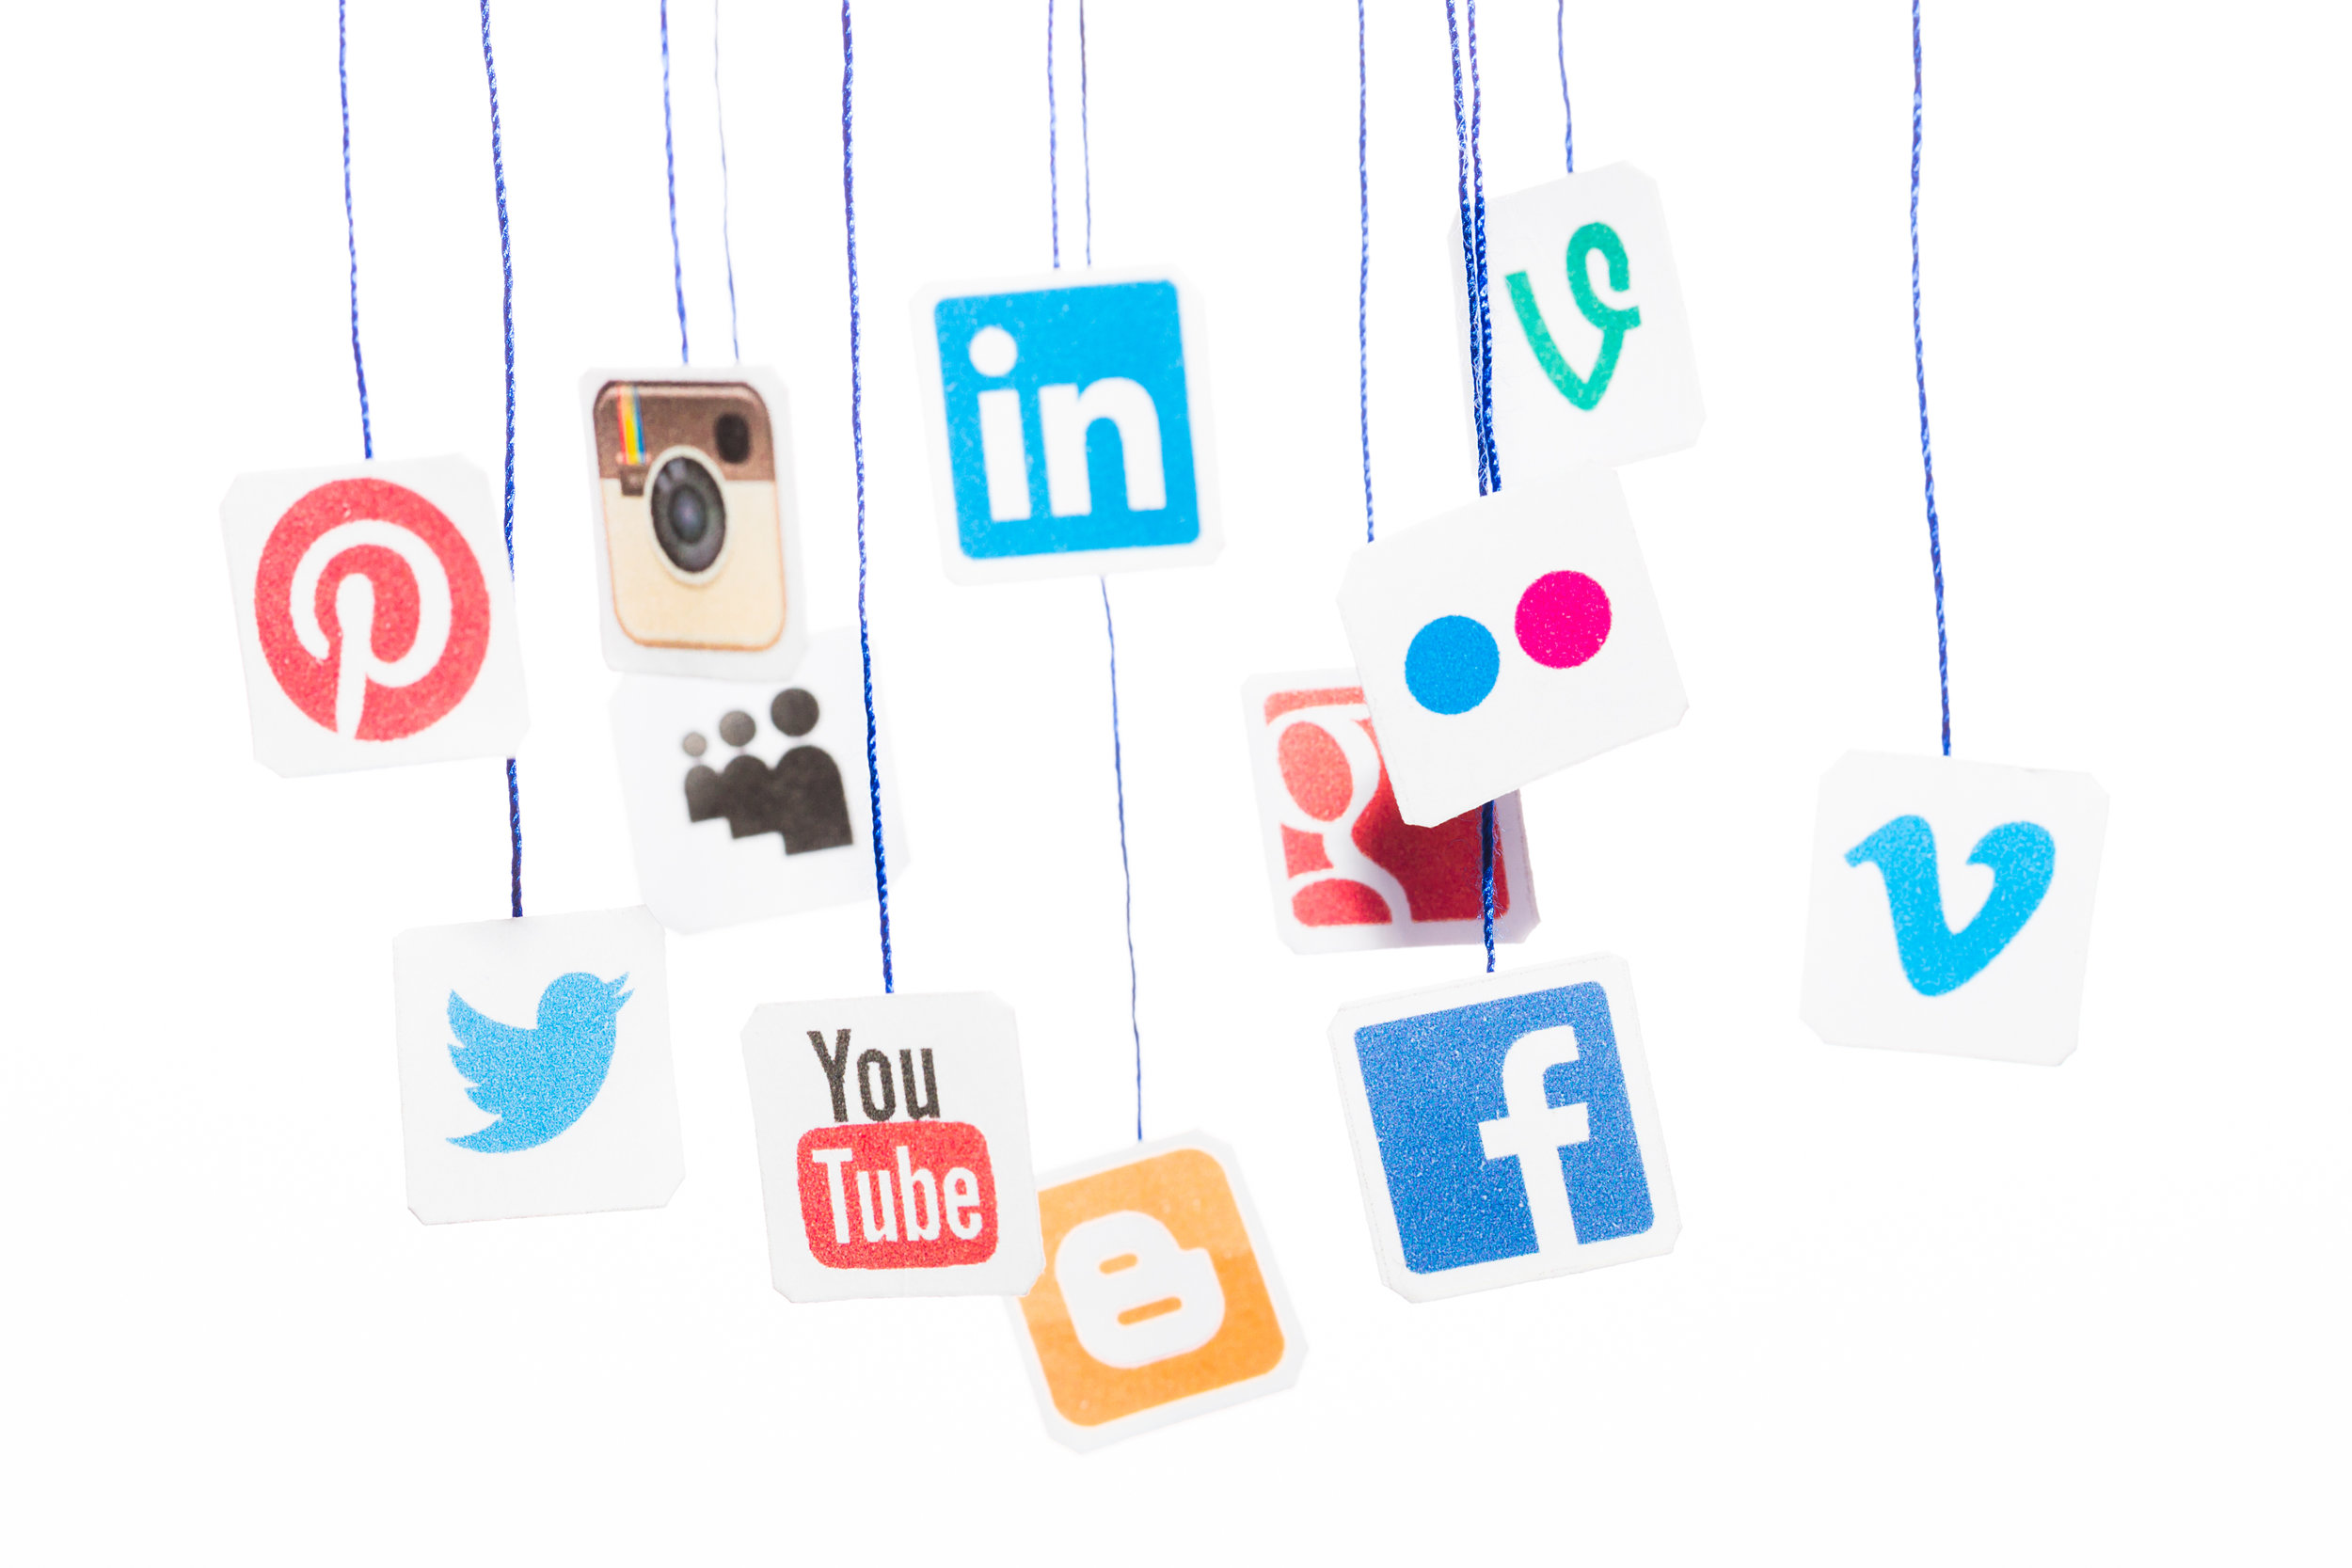 Social Media Horse Sense    Part II: Industry Issues In The Digital Age      By Peter J. Sacopulos      This is the second article in a two-part series on social media for Thoroughbred trainers. Part I appeared in the Winter 2017 issue. It examined social media usage and issues faced by trainers who wish to promote their business online. This installment focuses on broader issues facing the racing industry and how trainers can use social media to affect positive change and ensure the future of the sport.      In 1868, the publication of the The American Stud Book sparked the establishment and phenomenal growth of organized horseracing across the United States. America's first racetrack had opened in colonial New York in 1665, and racing was popular in various areas of the country ever since, particularly the south. But the arrival of the first U.S. Thoroughbred registry was the game changer that transformed racing into a truly national sport.      This year marks the 150th anniversary of the American Stud Book's debut, but do not expect much in the way of celebration. America's Thoroughbred racing industry currently faces a slew of challenging issues, and the future of the sport is far from guaranteed. Another historic game changer would certainly be welcomed, but today's problems will not likely be resolved with a single stroke. Odds are that positive, popularity-driving change will unfold via a variety of initiatives and approaches over time.       Since these efforts will take place in the digital age, the power of social media will play a vital role in their success or failure. Proponents of racing will seek to harness social media to succeed. Opponents of racing will do everything they can to use social media to foil such efforts. This dynamic has already been playing out online for years, and we may expect it to intensify in the years ahead.      As a trainer working to build a business and a reputation, you may feel that dealing with larger industry issues is